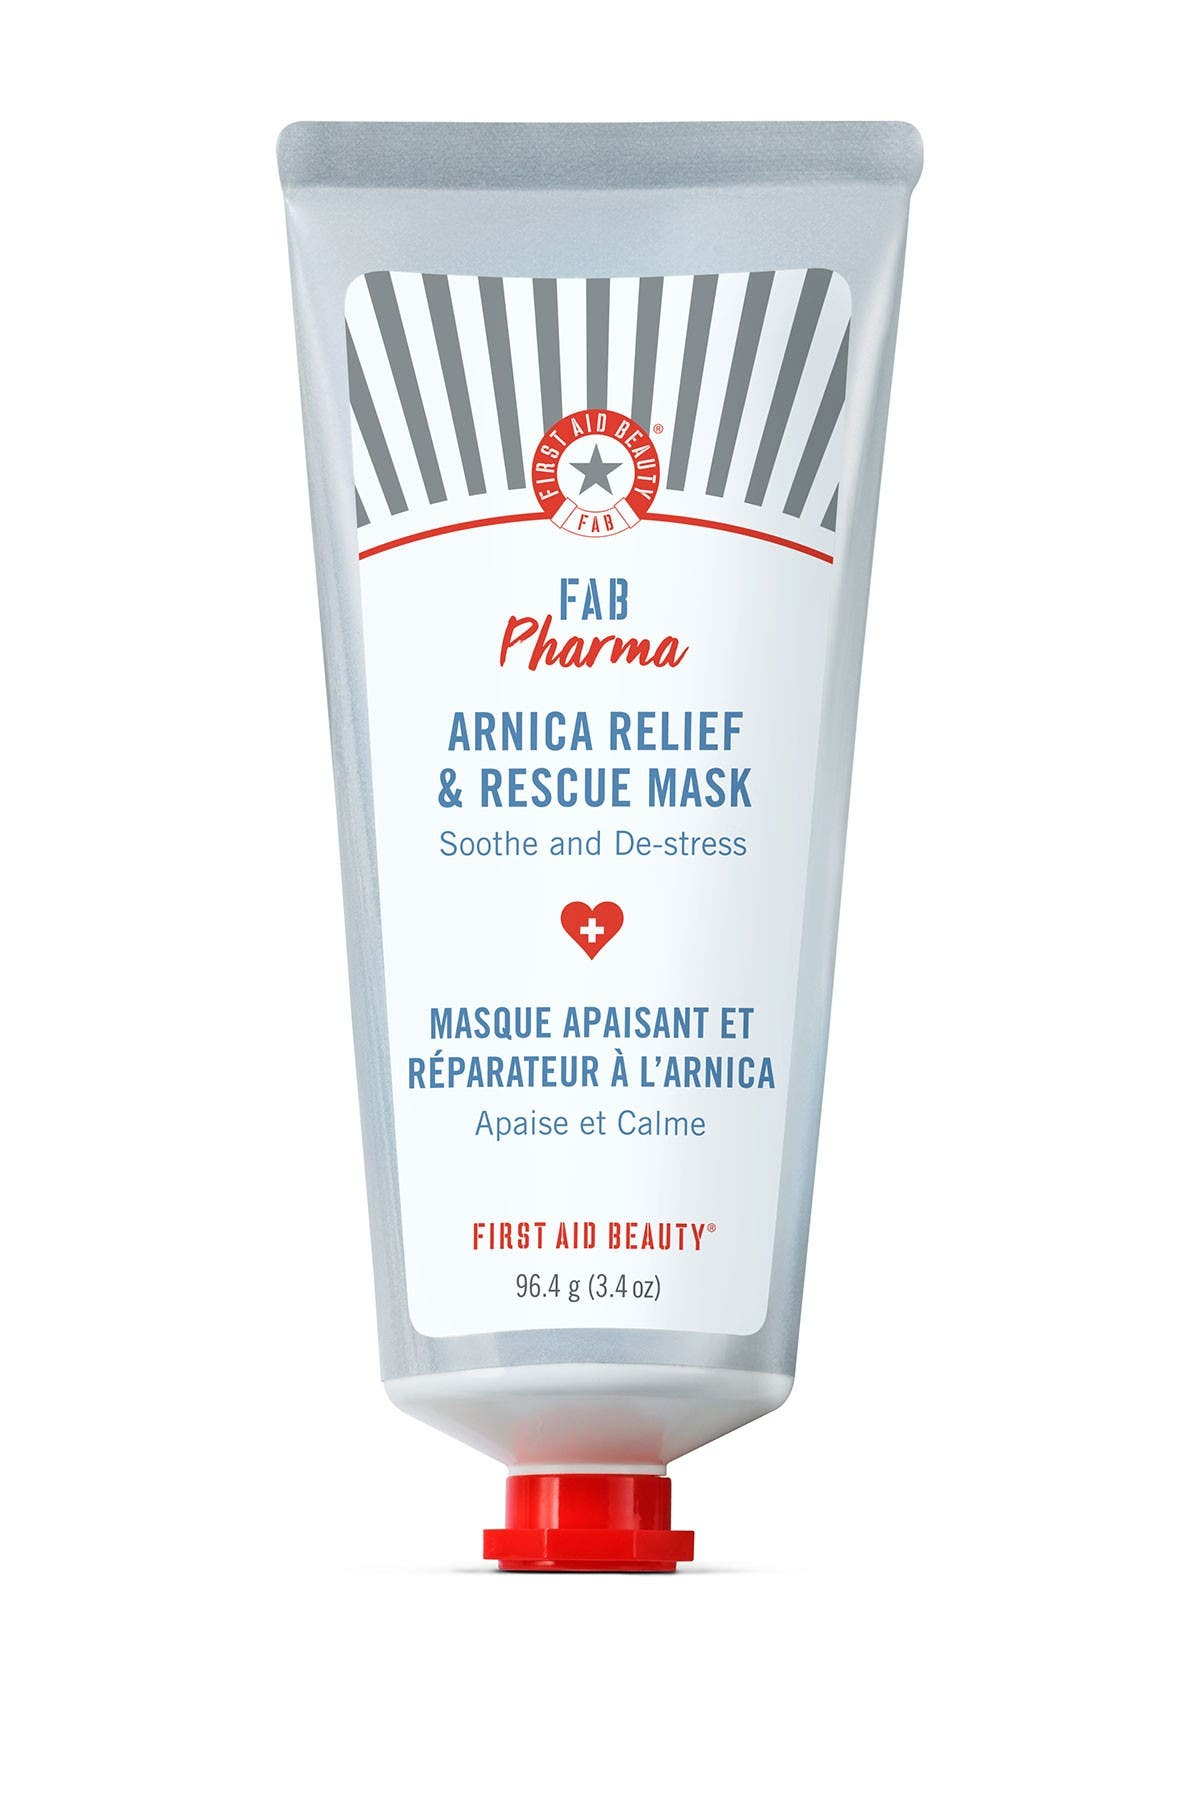 First Aid Beauty Fab Pharma Arnica Relief & Rescue Mask 3.4 oz/ 96.4 G